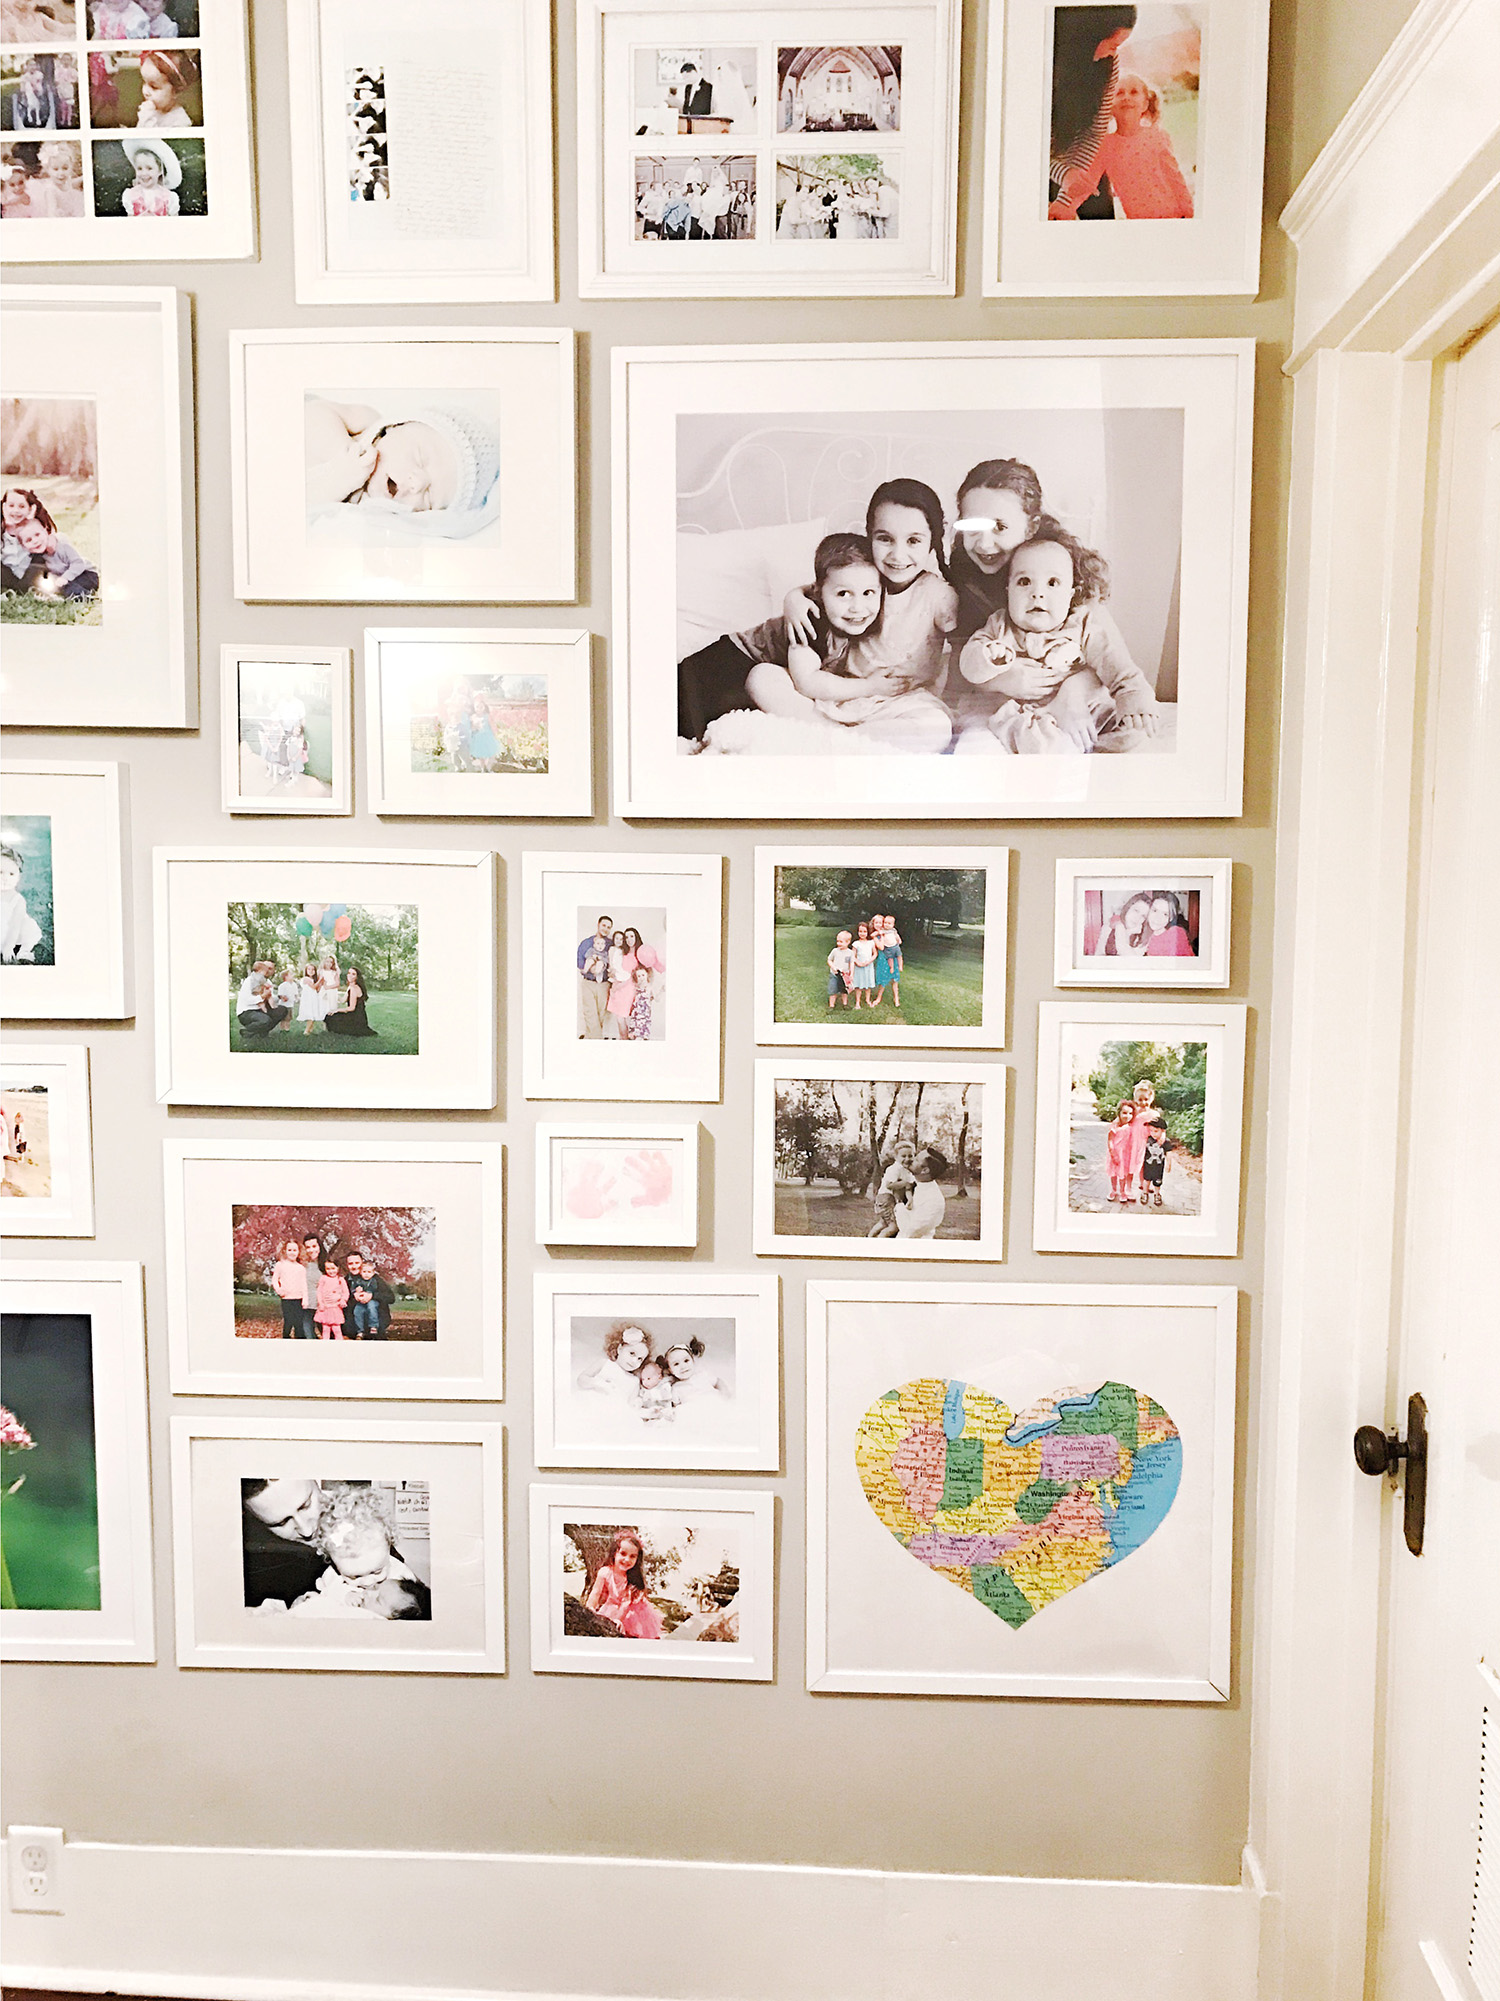 Our Hallway Gallery Wall At Home With Natalie The Blog Box